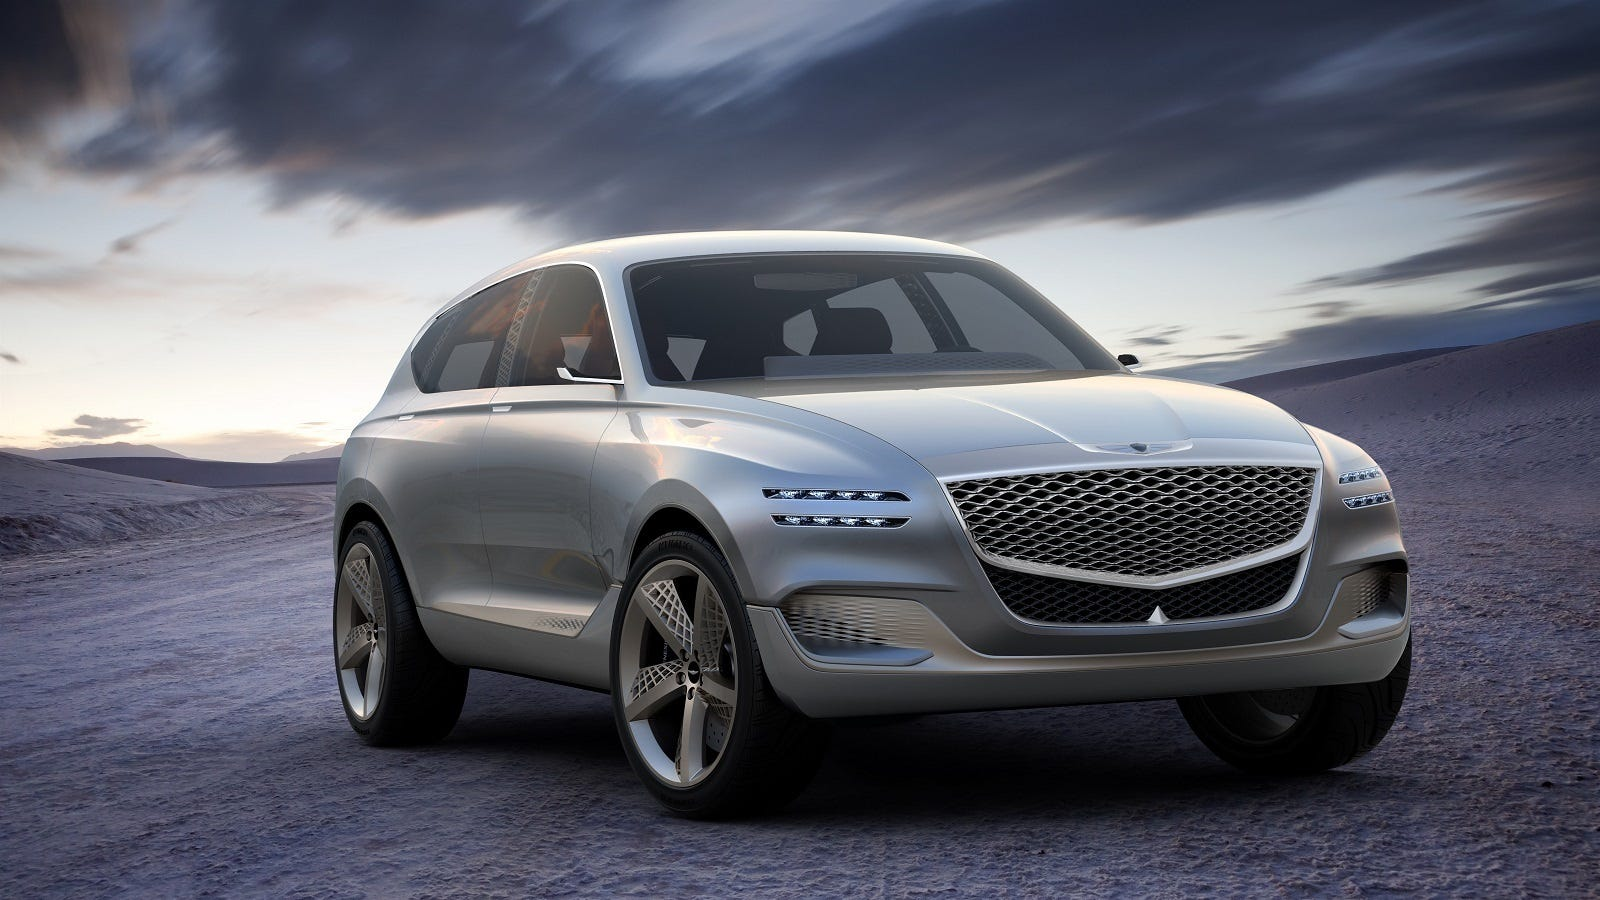 The Luxurious Genesis GV80 SUV Concept Runs On Magic Or